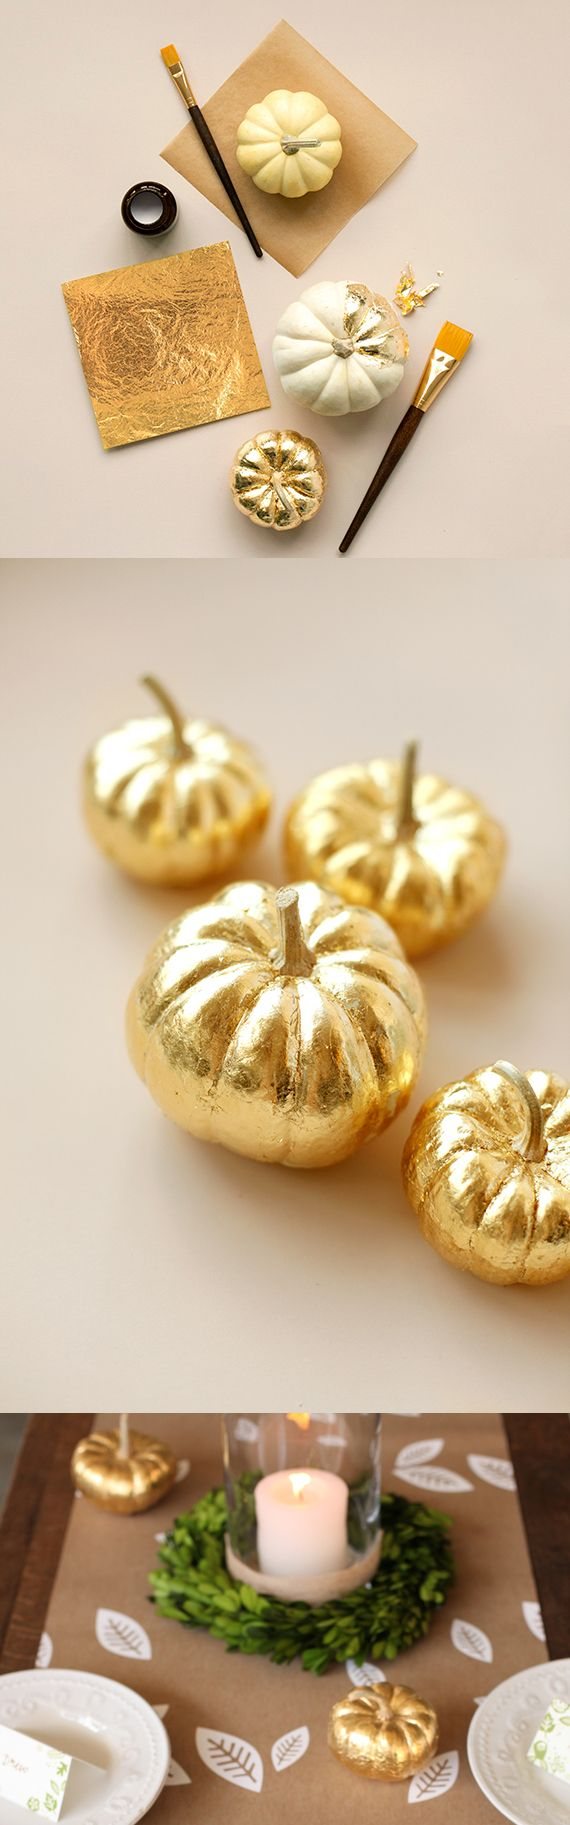 Gold leaf pumpkins are a chic and subtle way to decorate your Thanksgiving table. This spiny DIY Thanksgiving decoration will make your table pop!